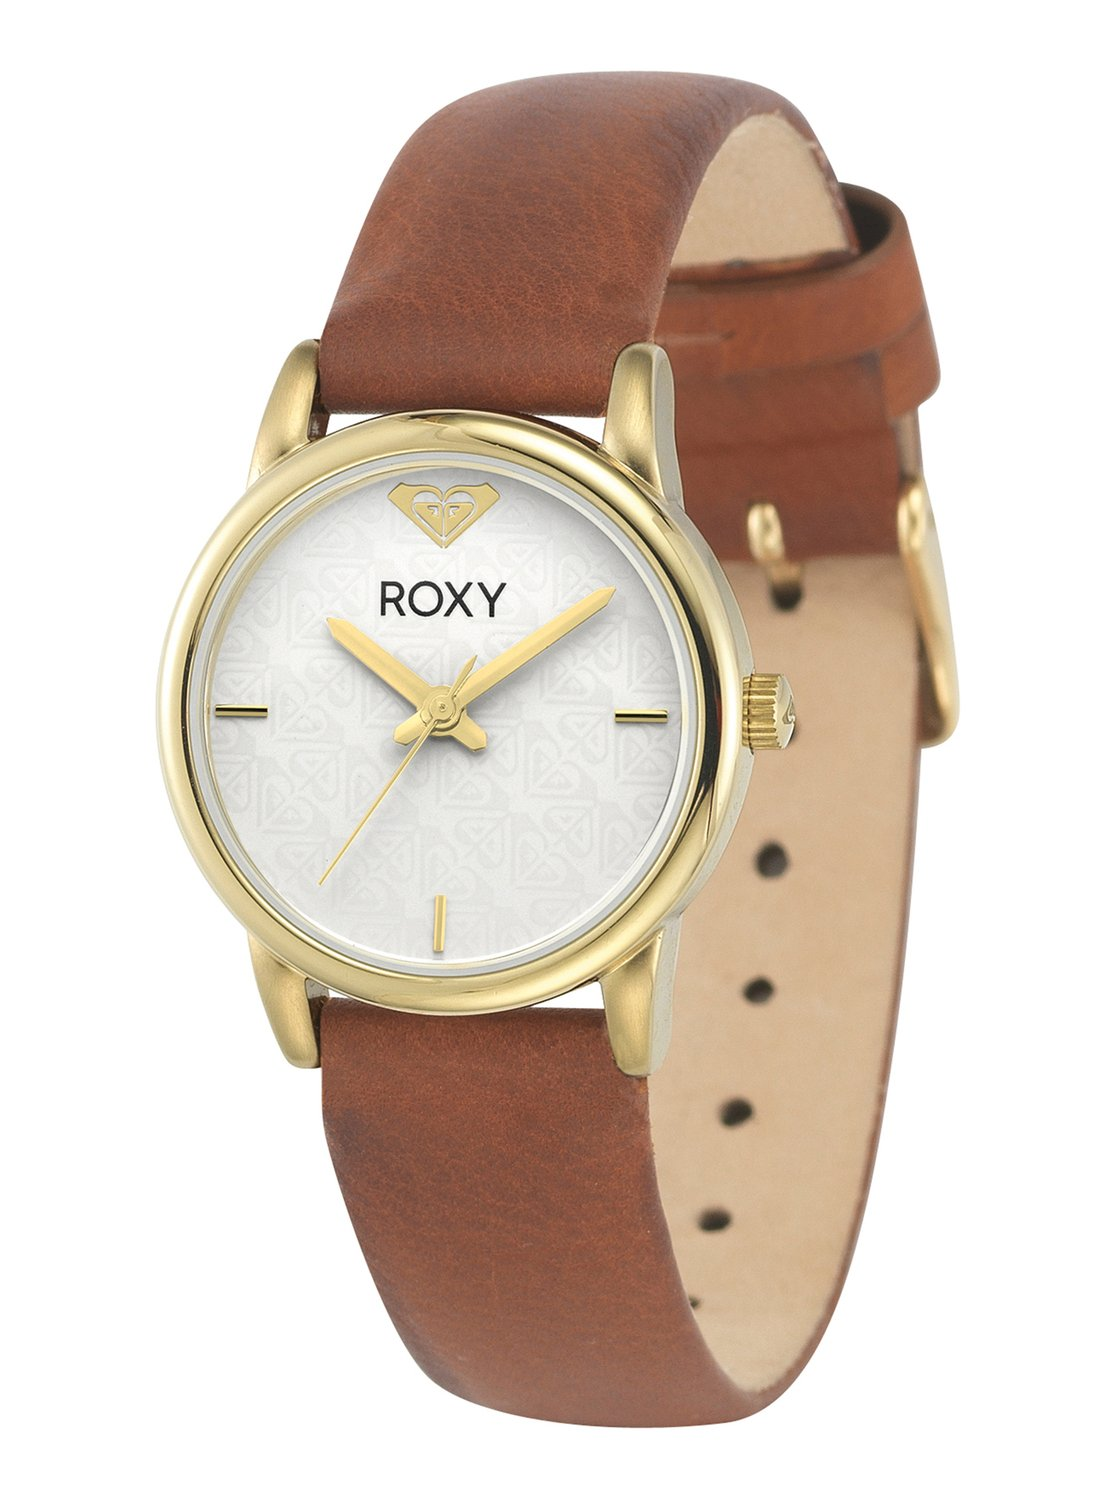 ea7029aef 0 The Huntington Leather - Analog Watch RX1020 Roxy